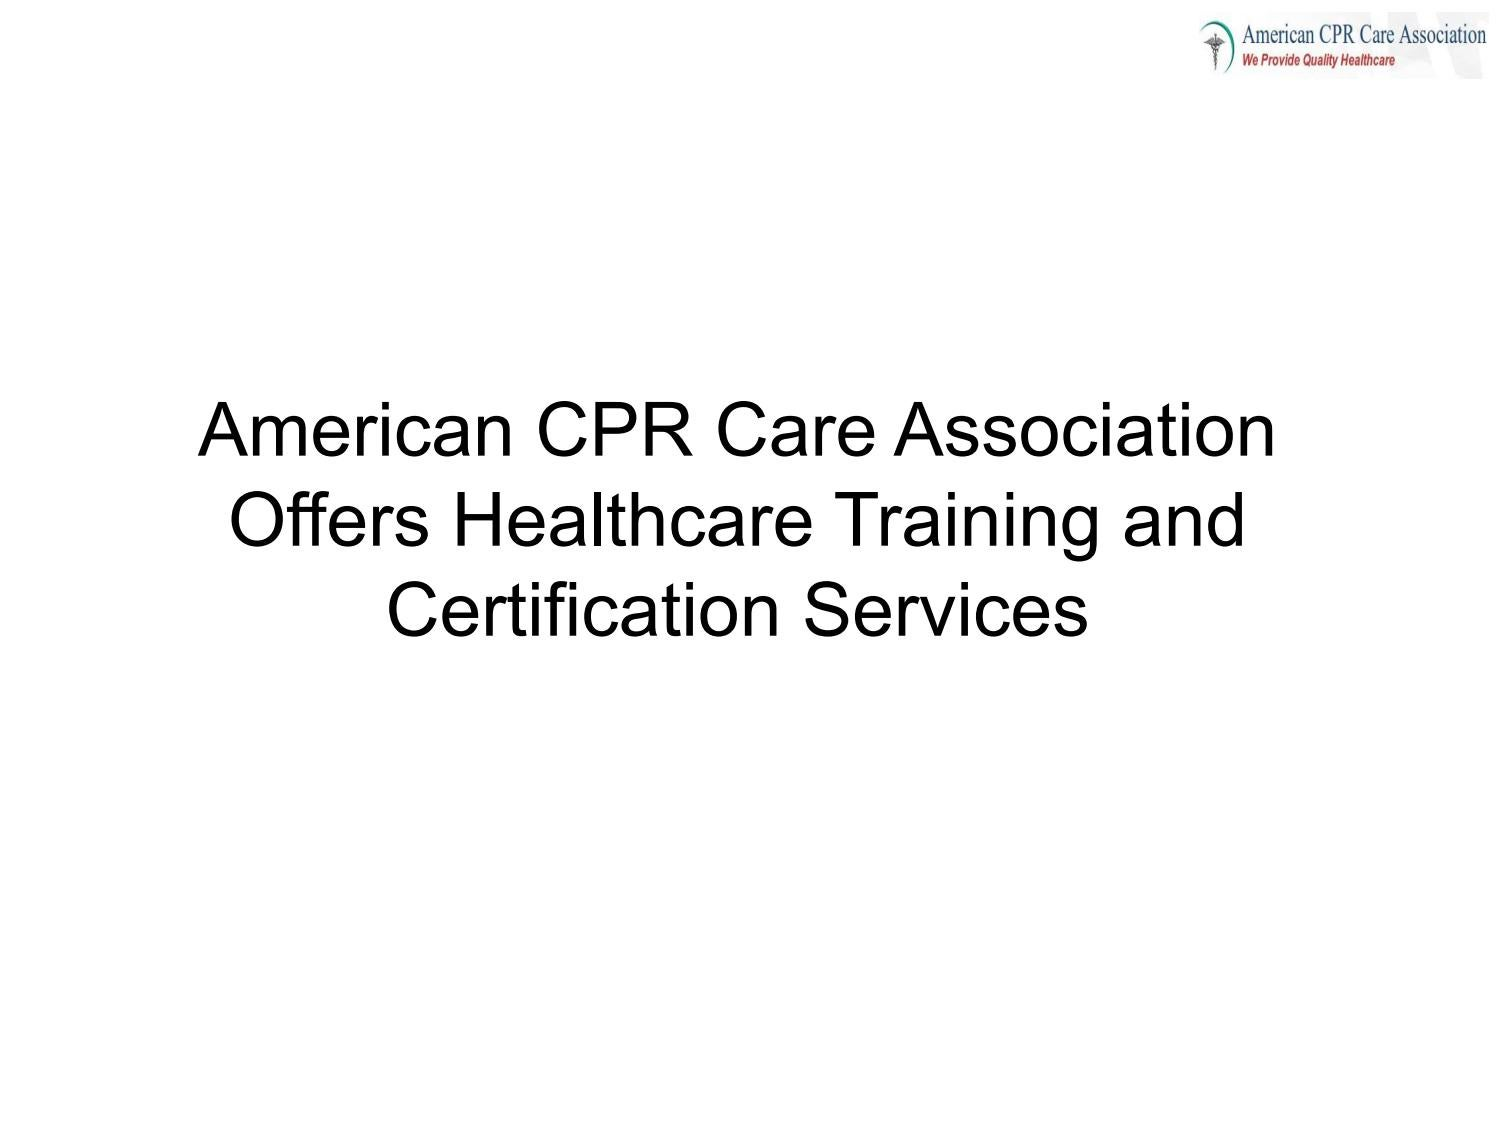 American cpr care association offers healthcare training and american cpr care association offers healthcare training and certification services by cprcare issuu 1betcityfo Images